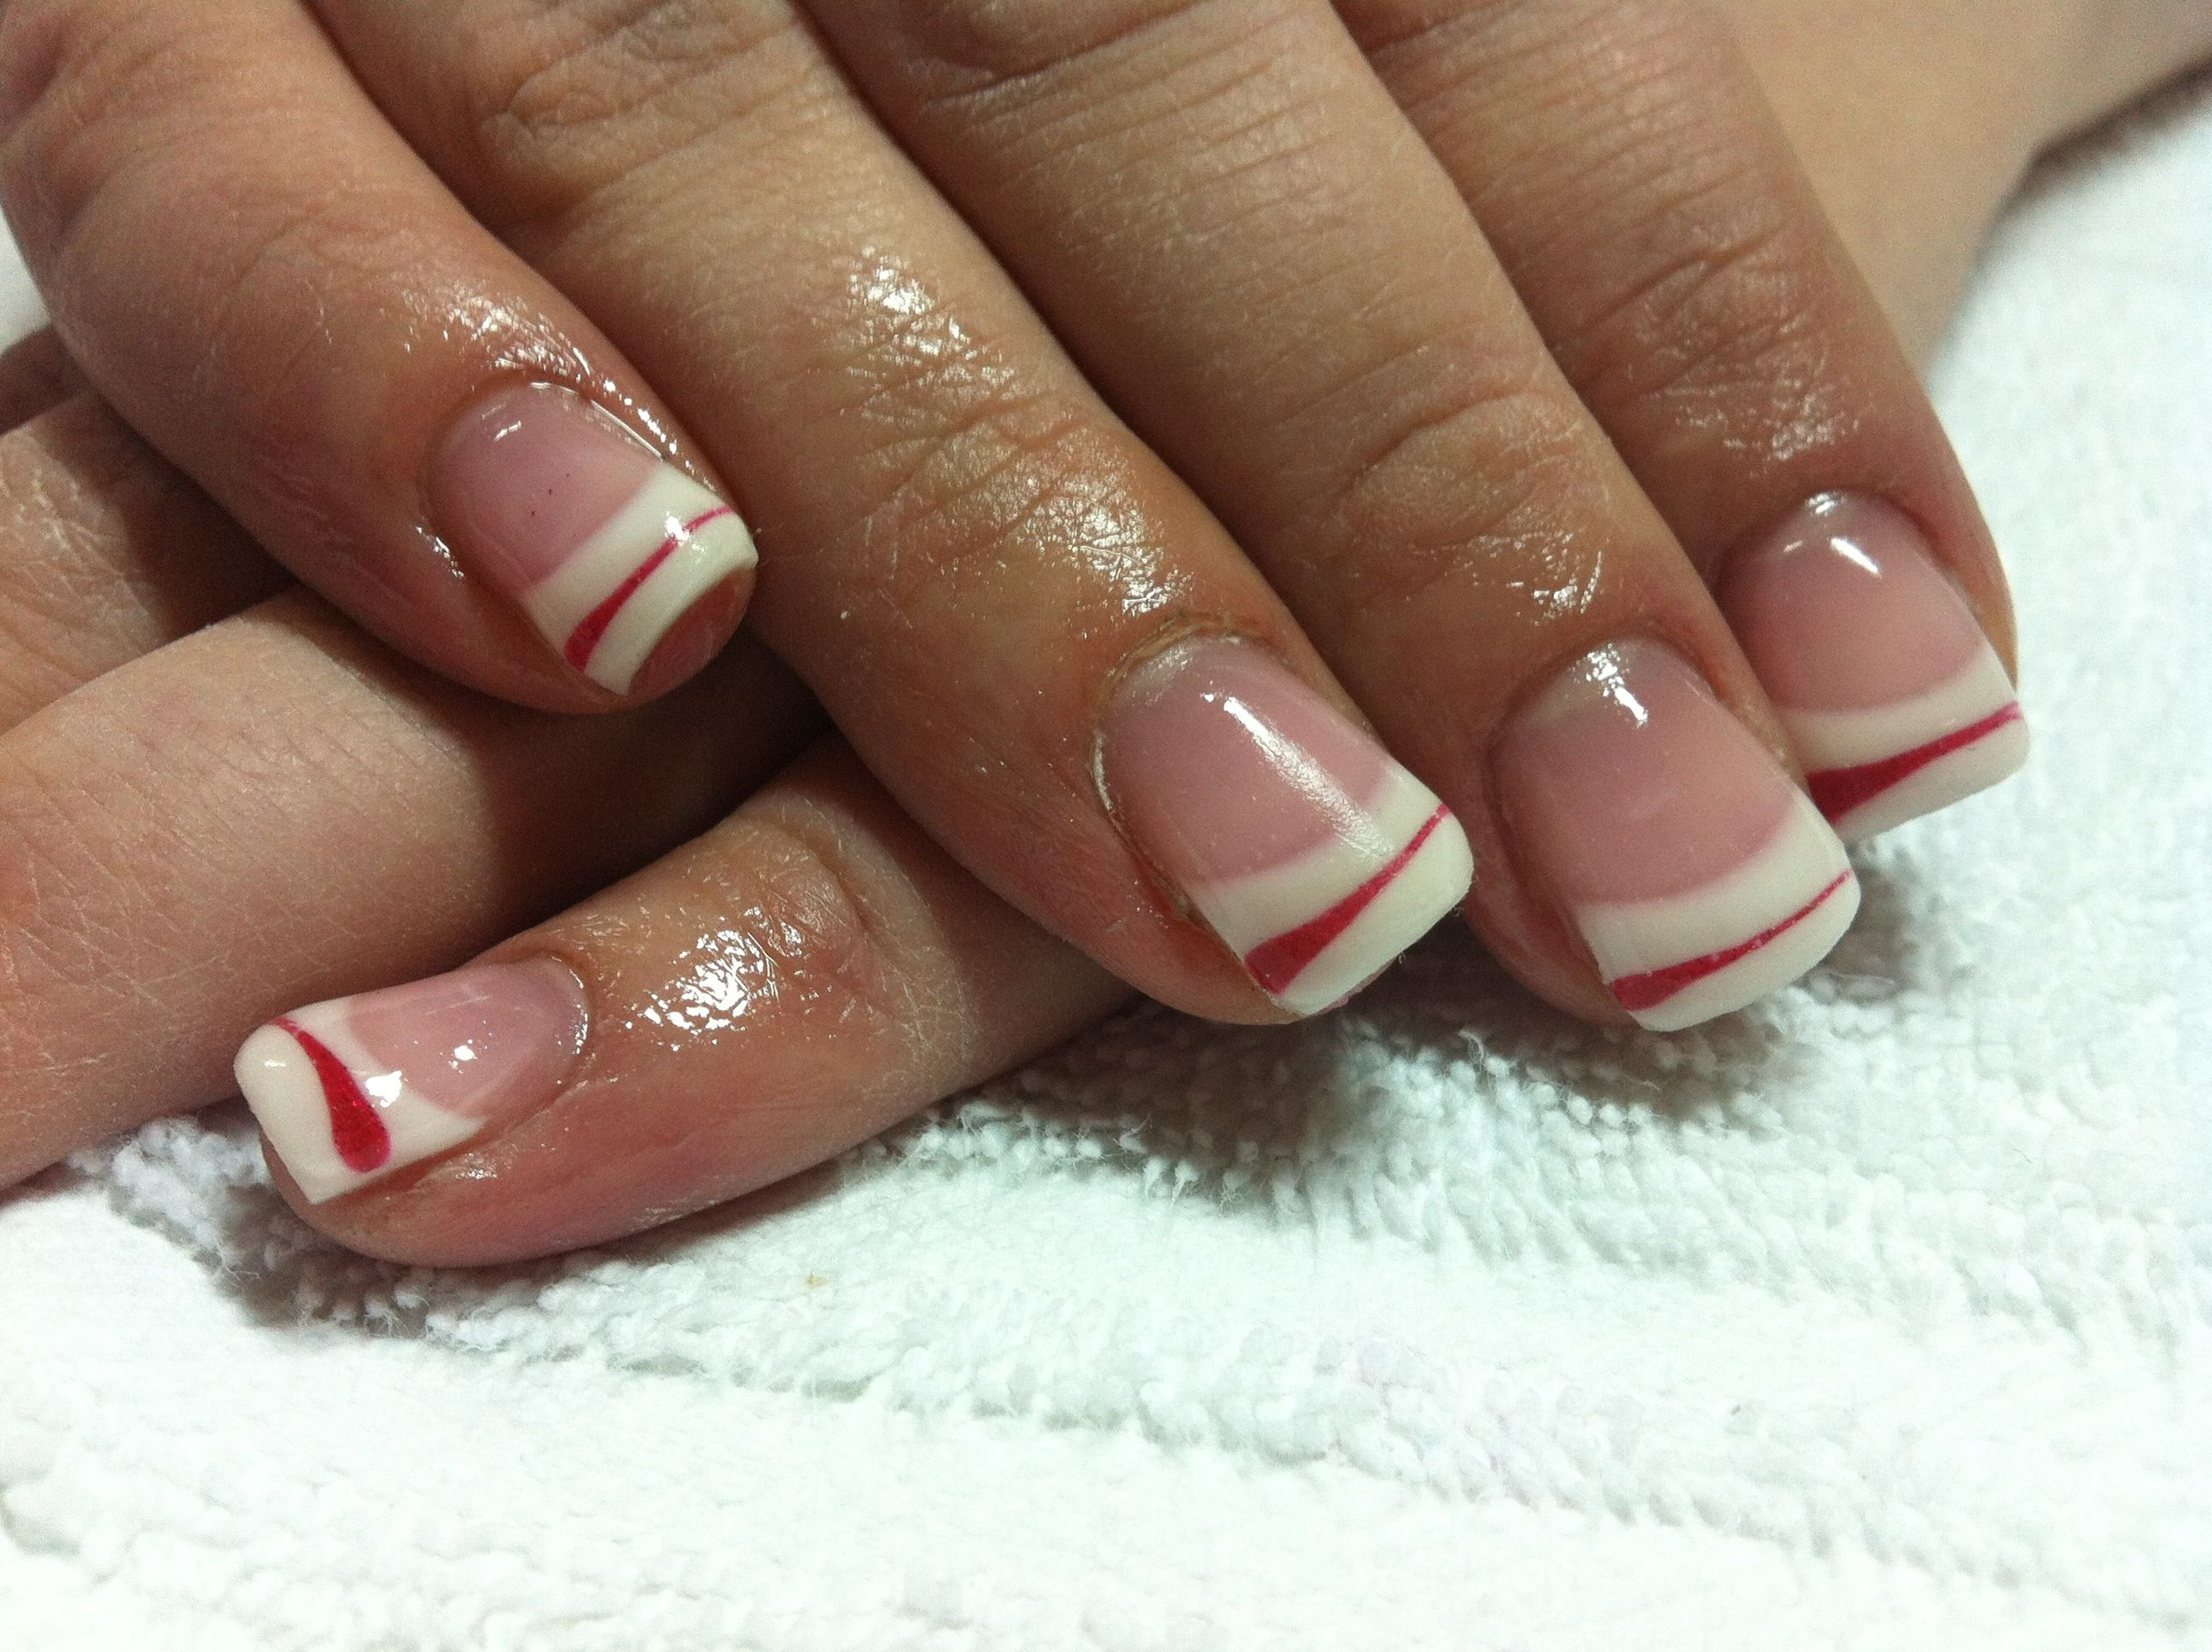 Colored french nail design - Colored French Tip Nail Designs Choice Image Nail Art Designs Nail Designs Gel Tips Images Nail